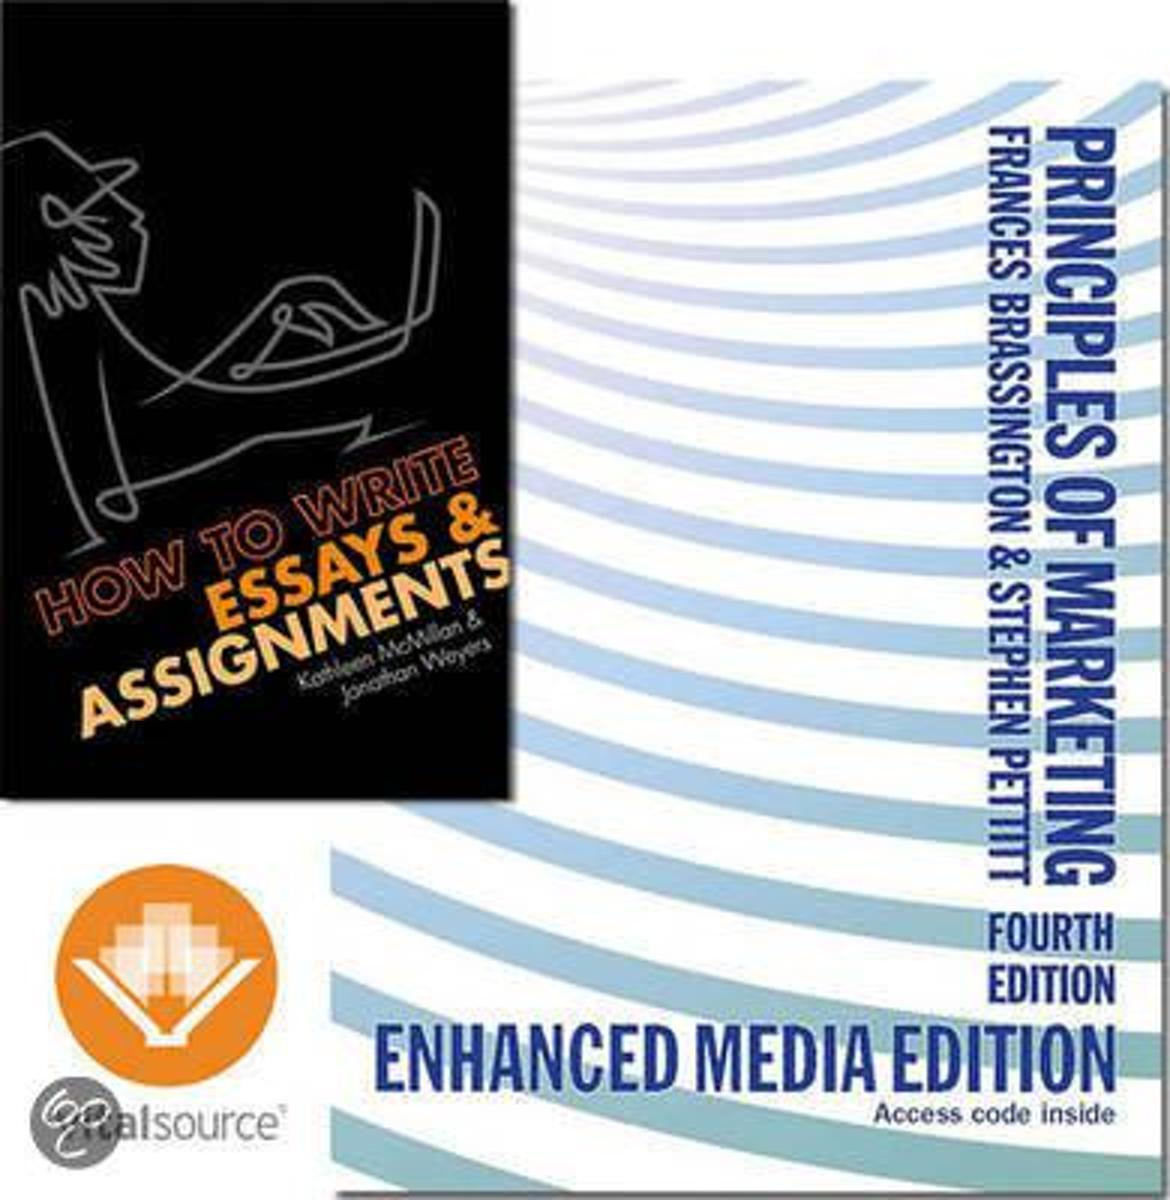 Principles Of Marketing With Ebook And How To Write Essays And Assignments